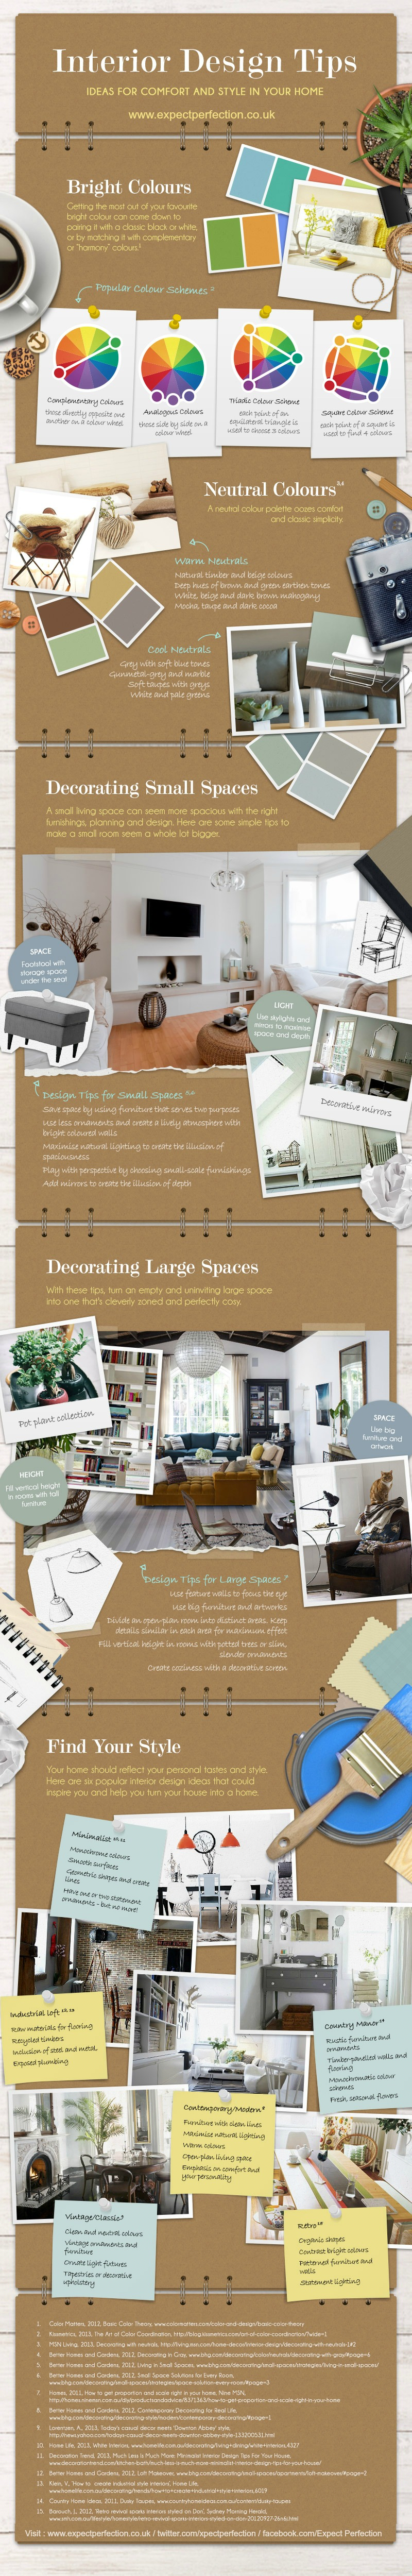 INTERIOR DESIGN TIPS Ideas For Comfort Style in your home www